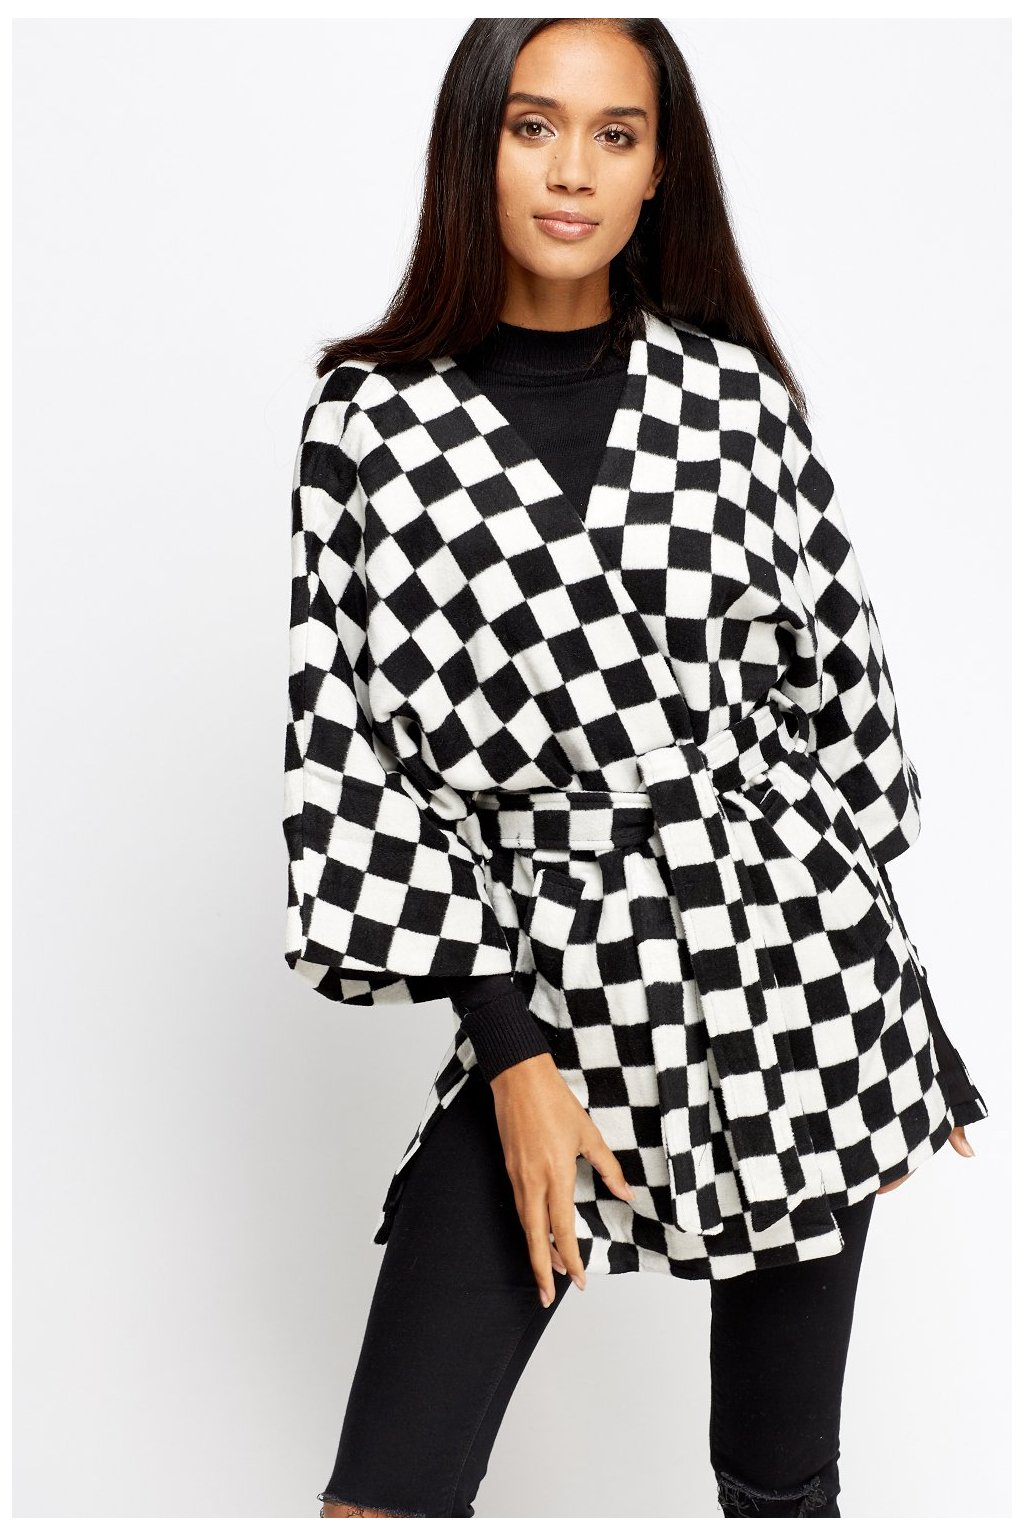 mono grid 3 4 sleeves jacket black white 45486 4